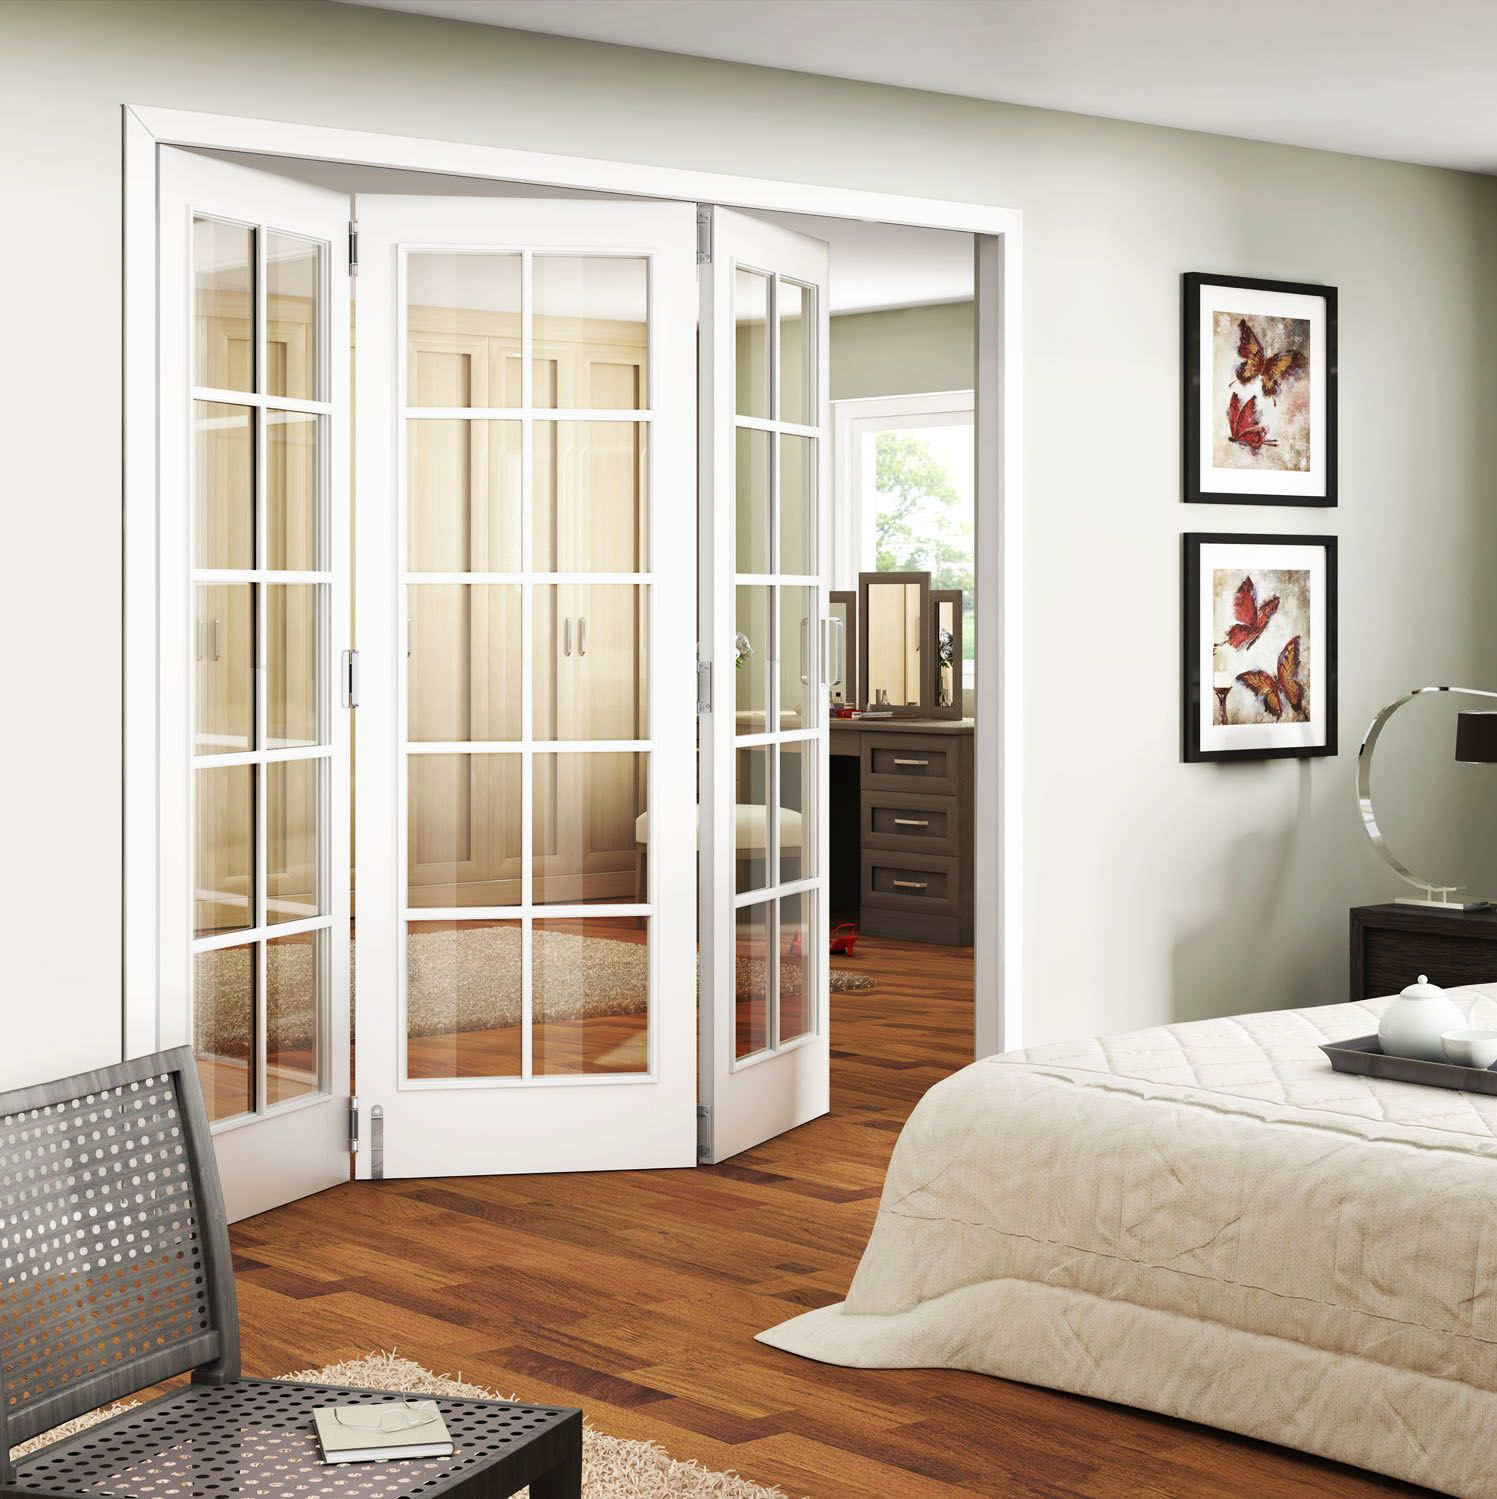 Image result for sliding wall partition glass french remodeling how to select great interior french doors beautiful bifold french doors interior design bifold is a great idea rubansaba